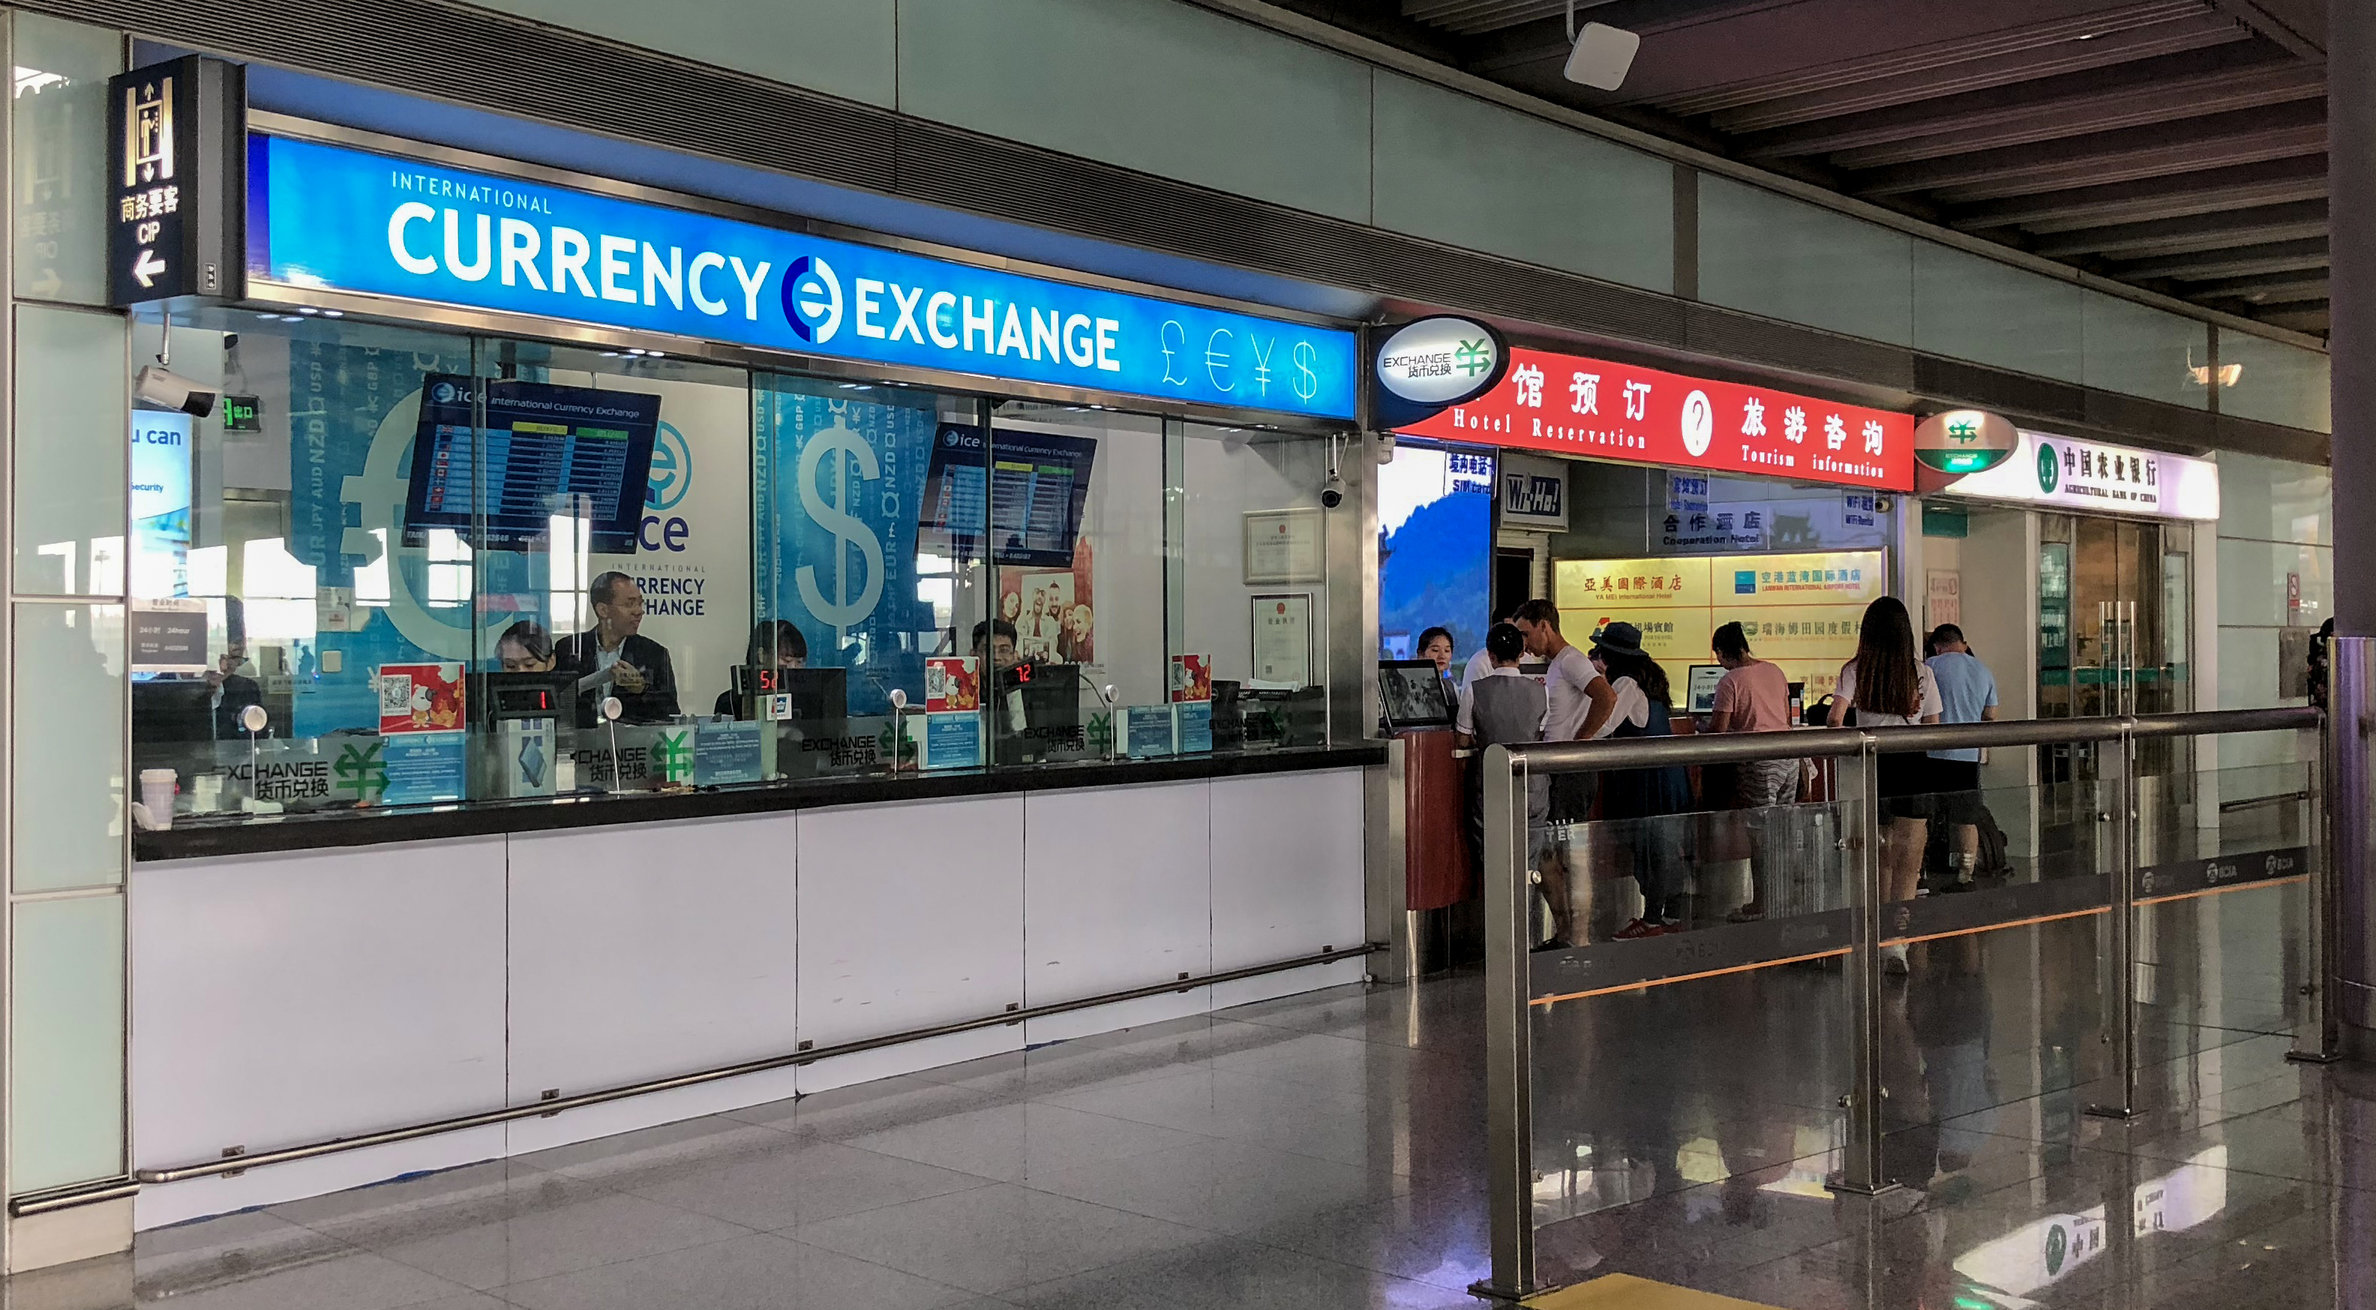 UK currency exchange at airport